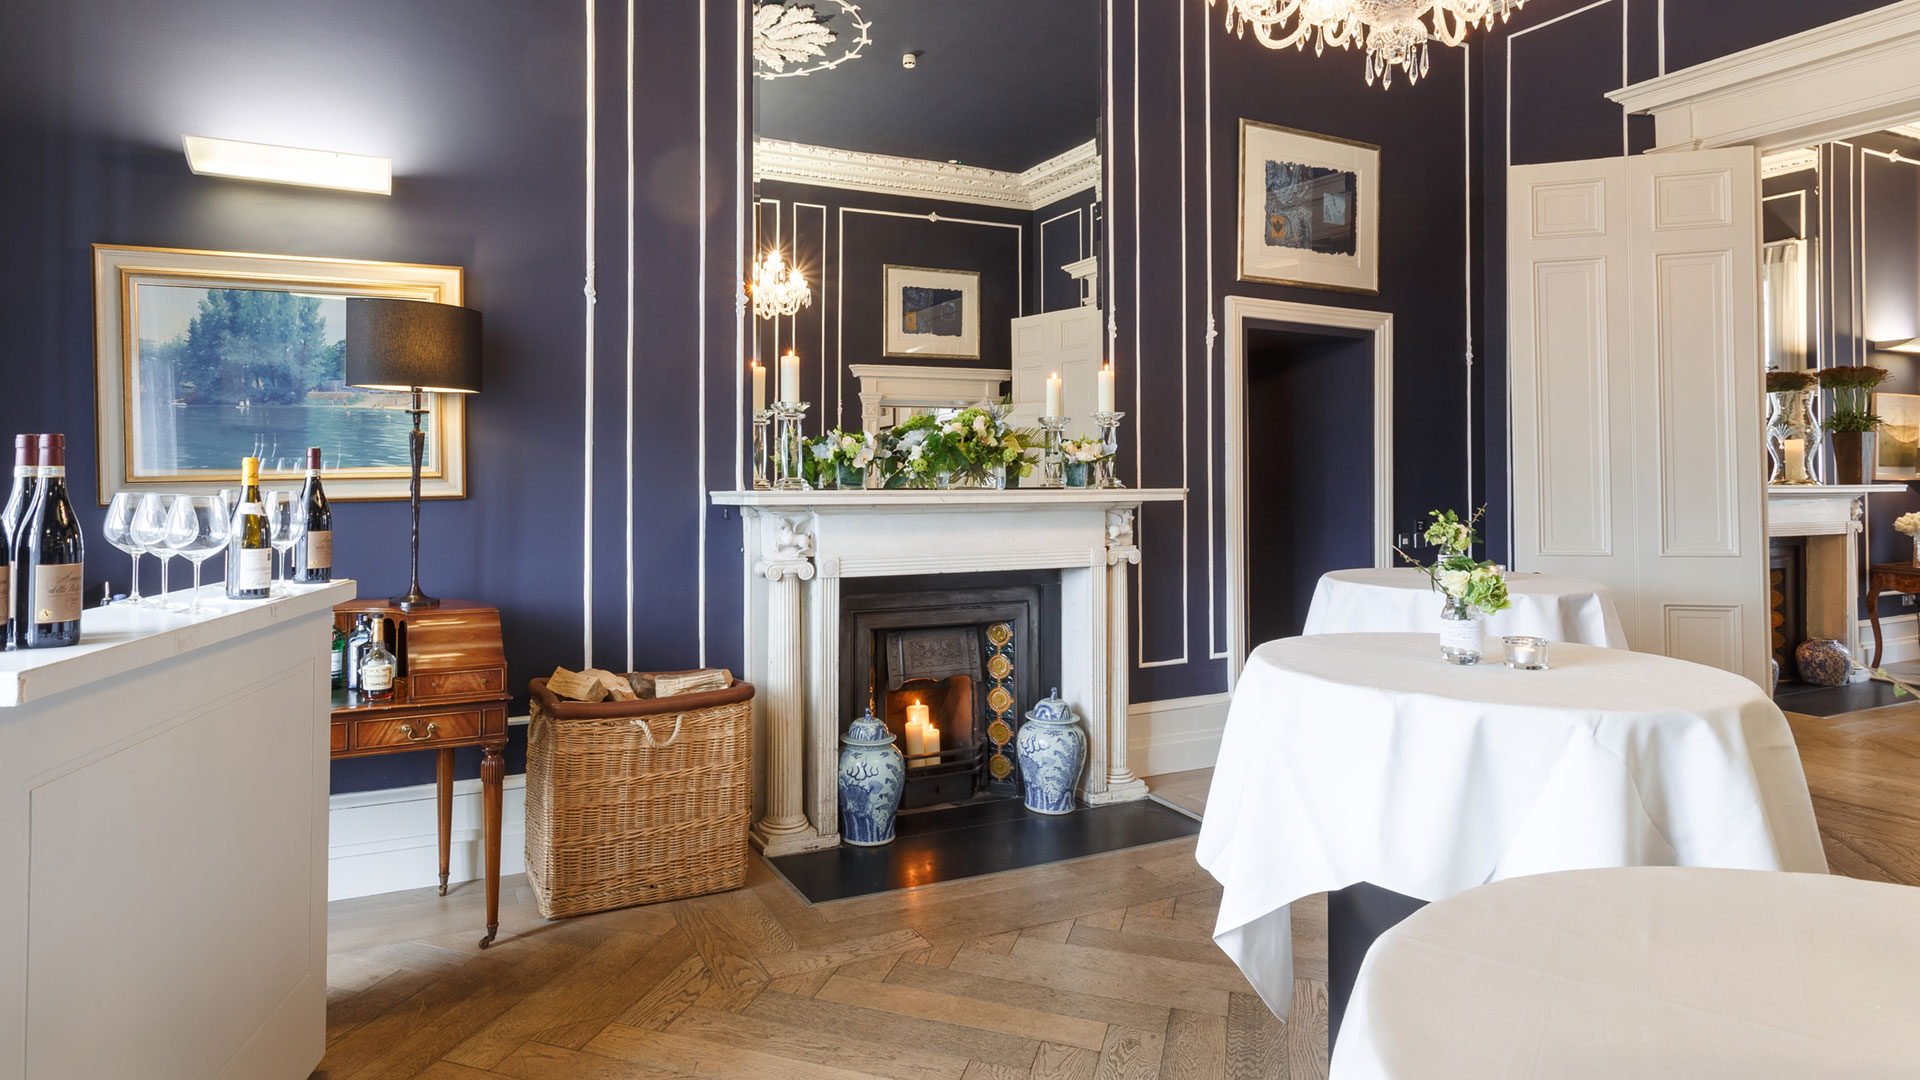 private events venue, private venue, private venue Dublin, private dining Dublin, private dining venue, 25 Fitzwilliam Place, private dining menu